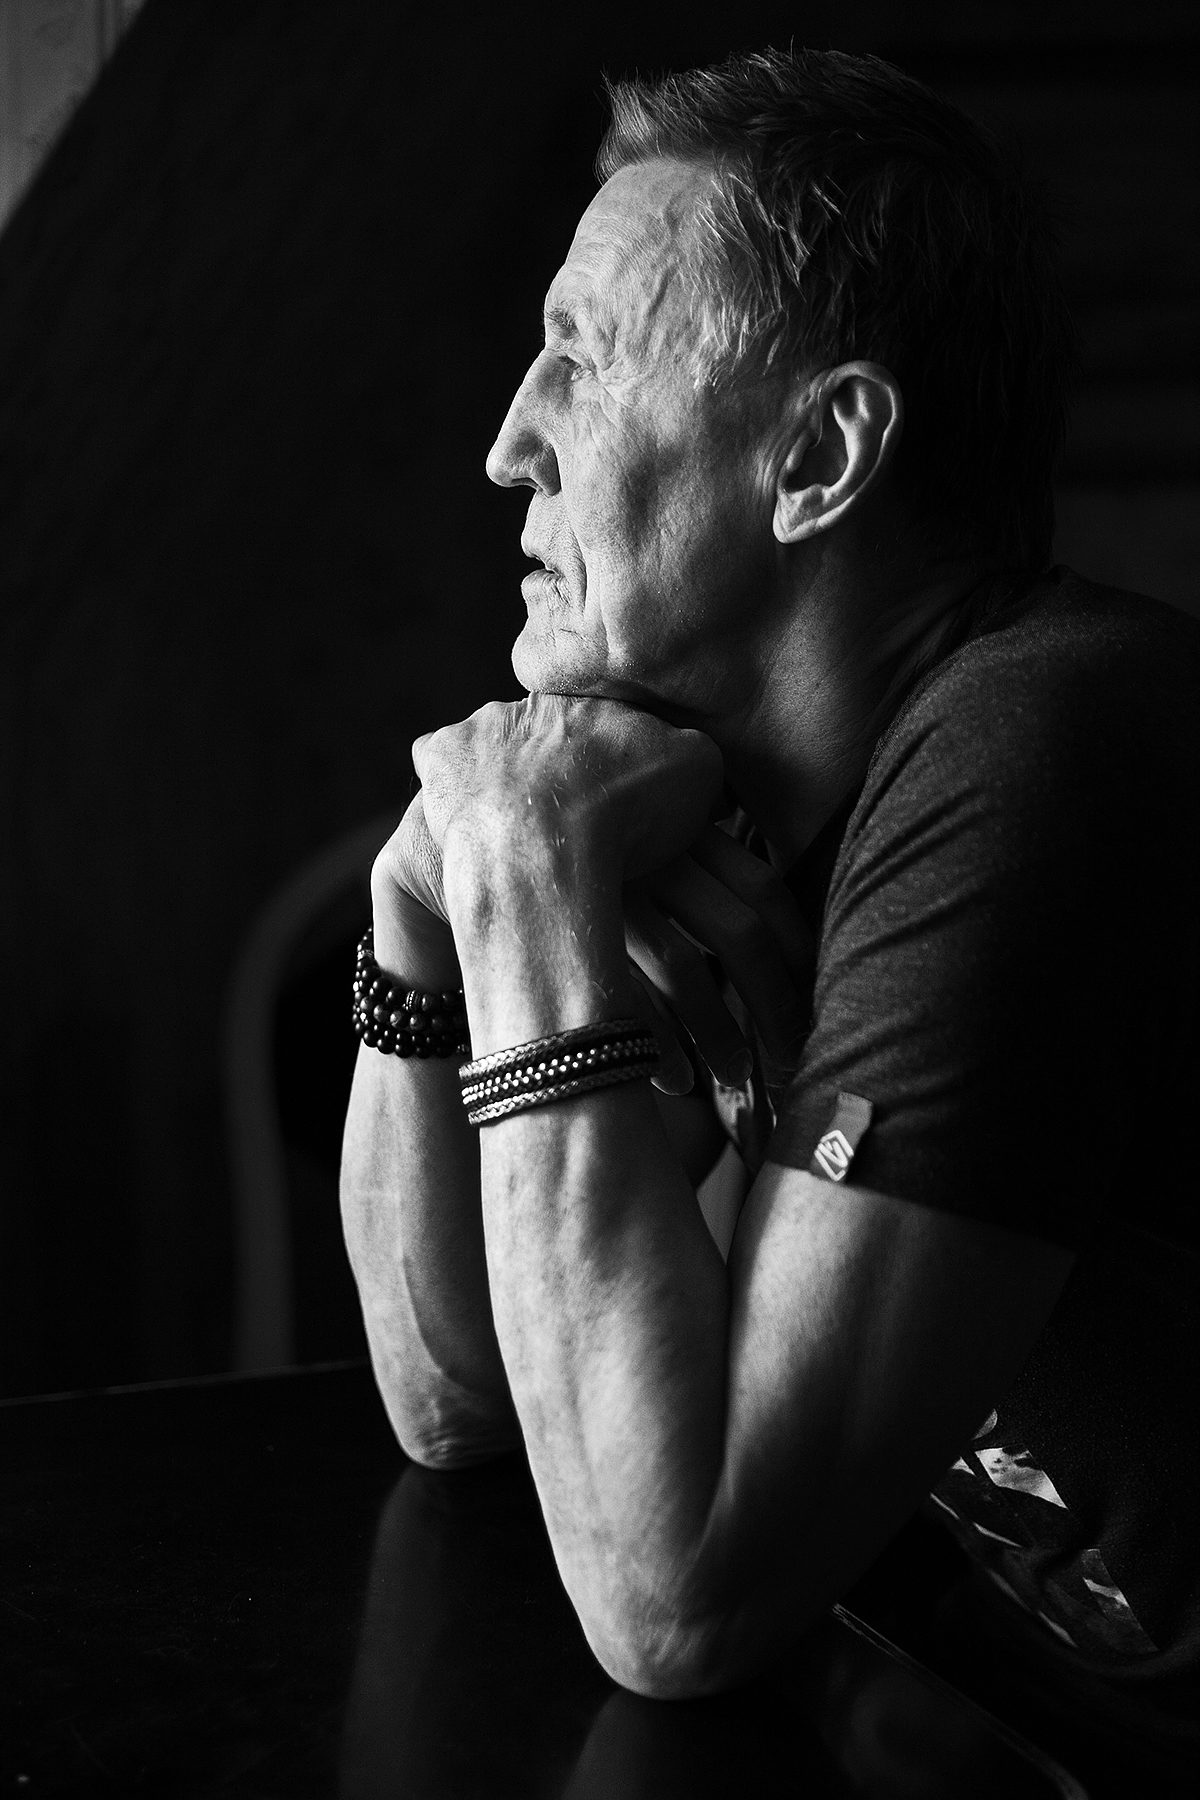 Portrait of Swedish hockey legend Börje Salming, shot in natural light using only one window